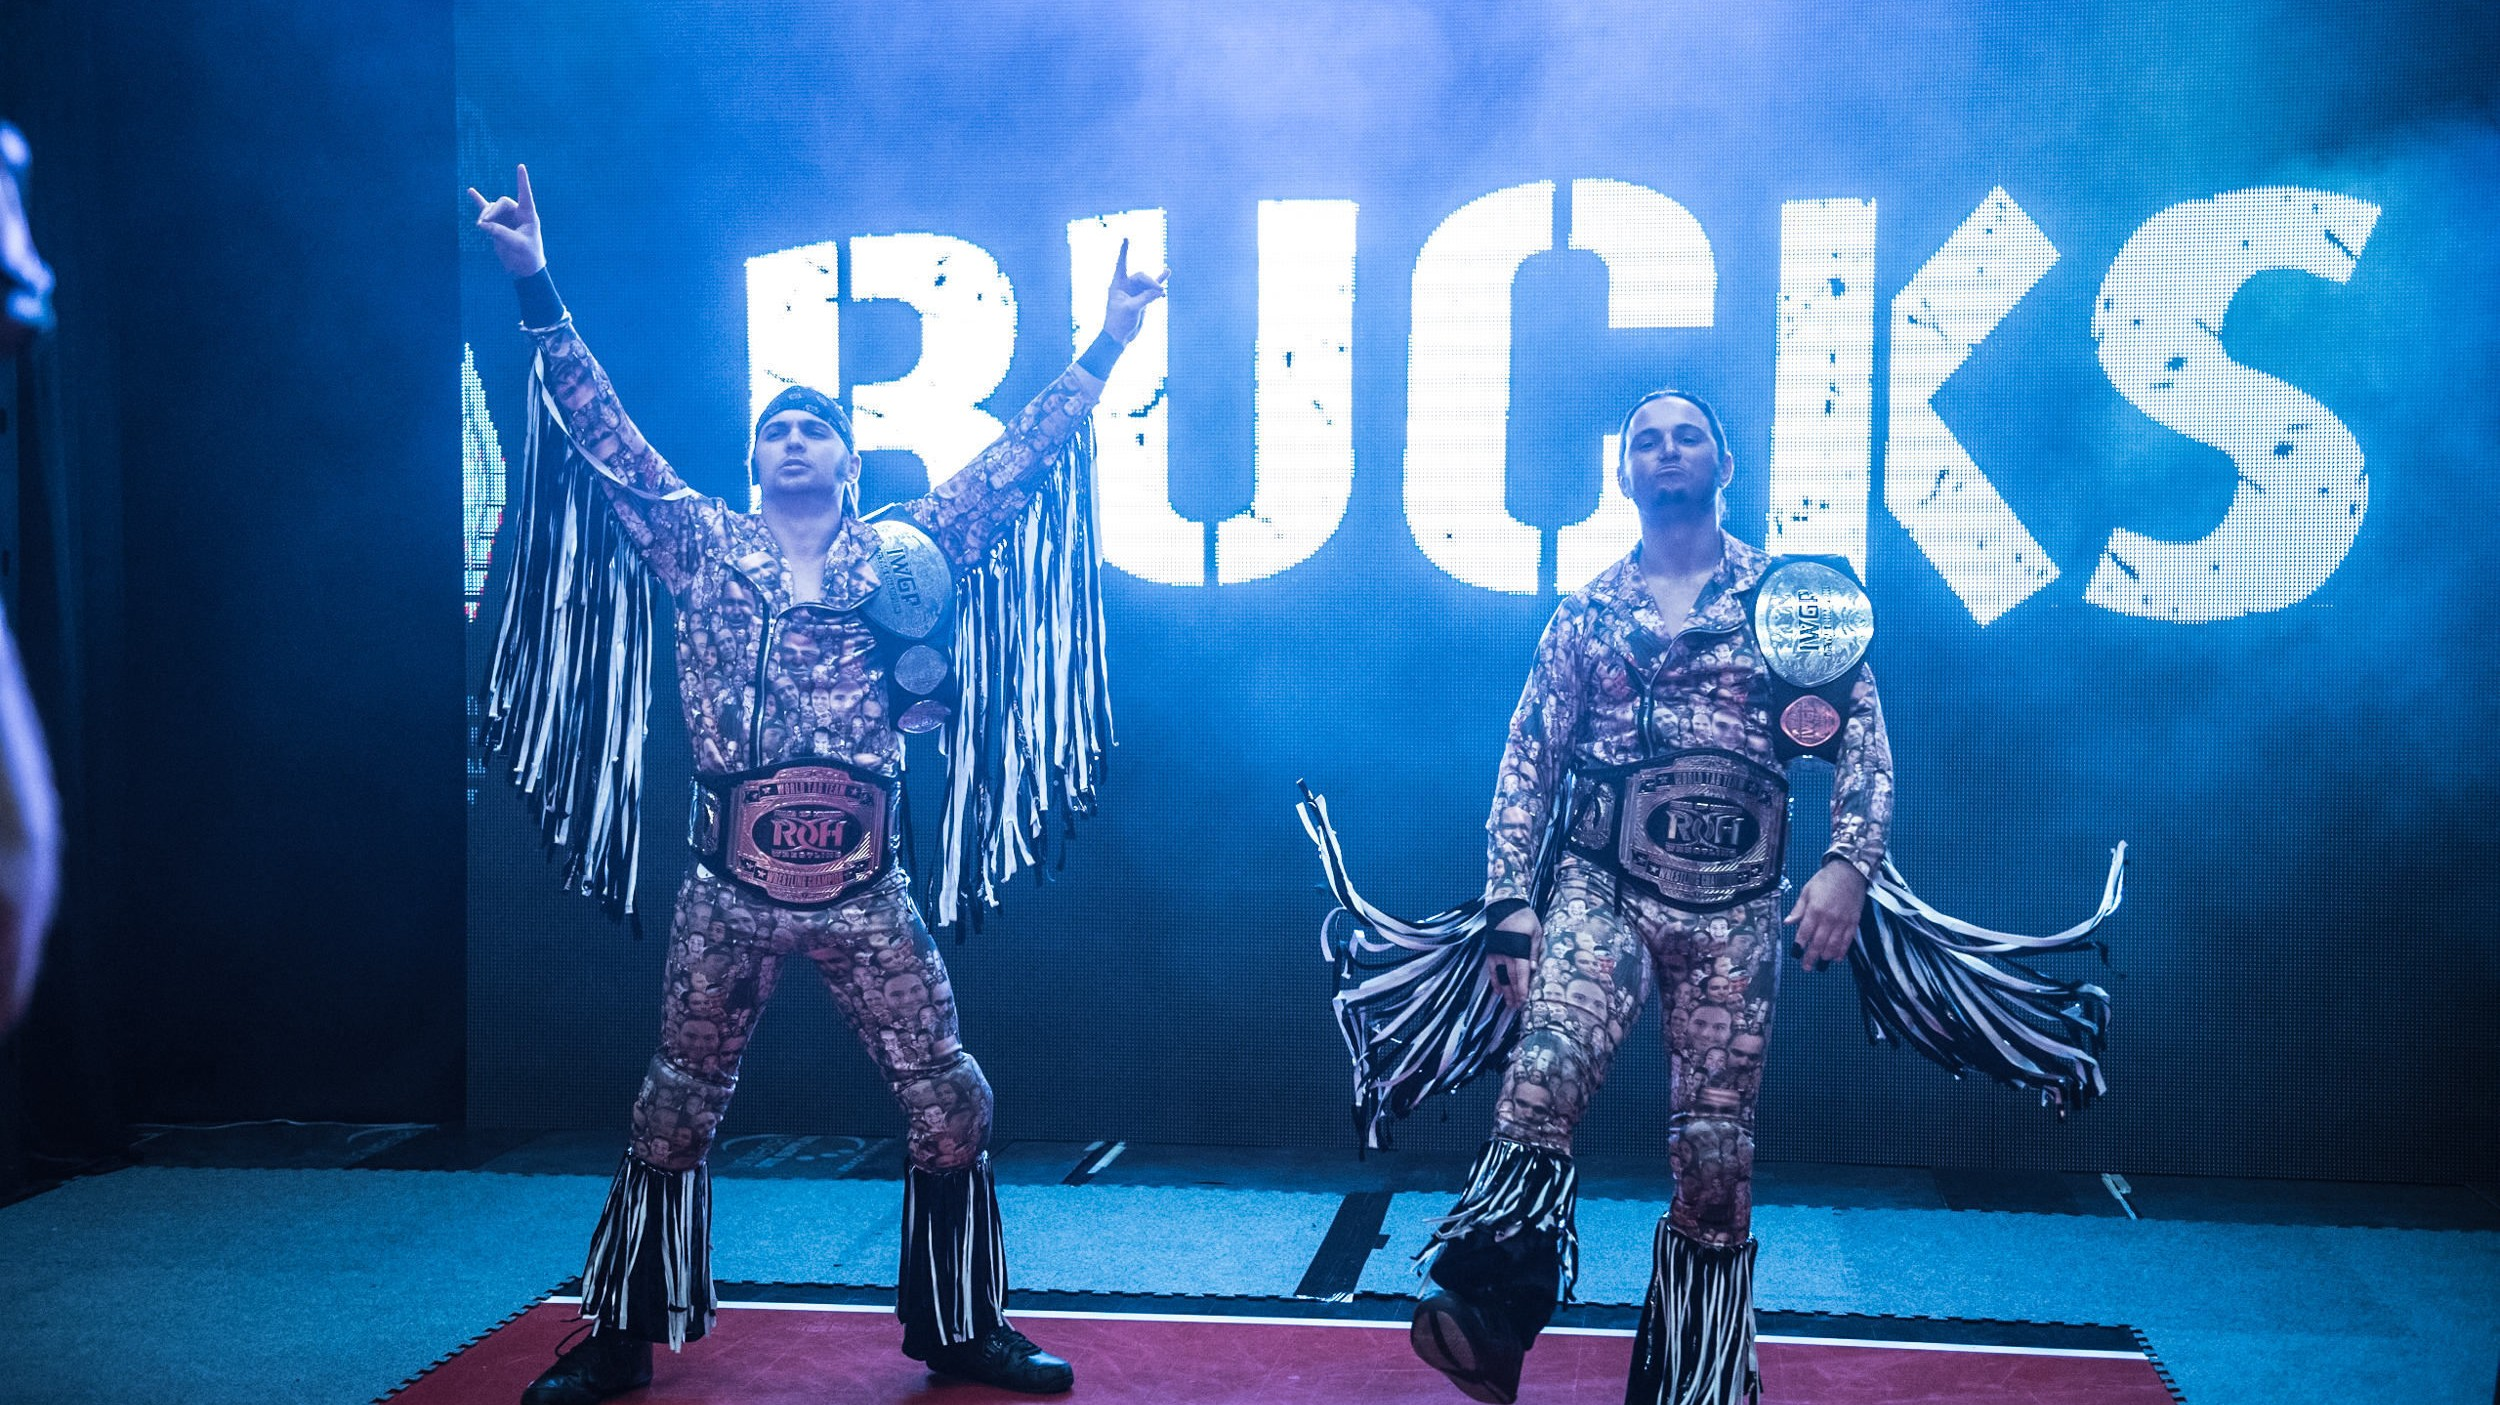 Party Next Door: How the Young Bucks Revolutionized Professional Wrestling